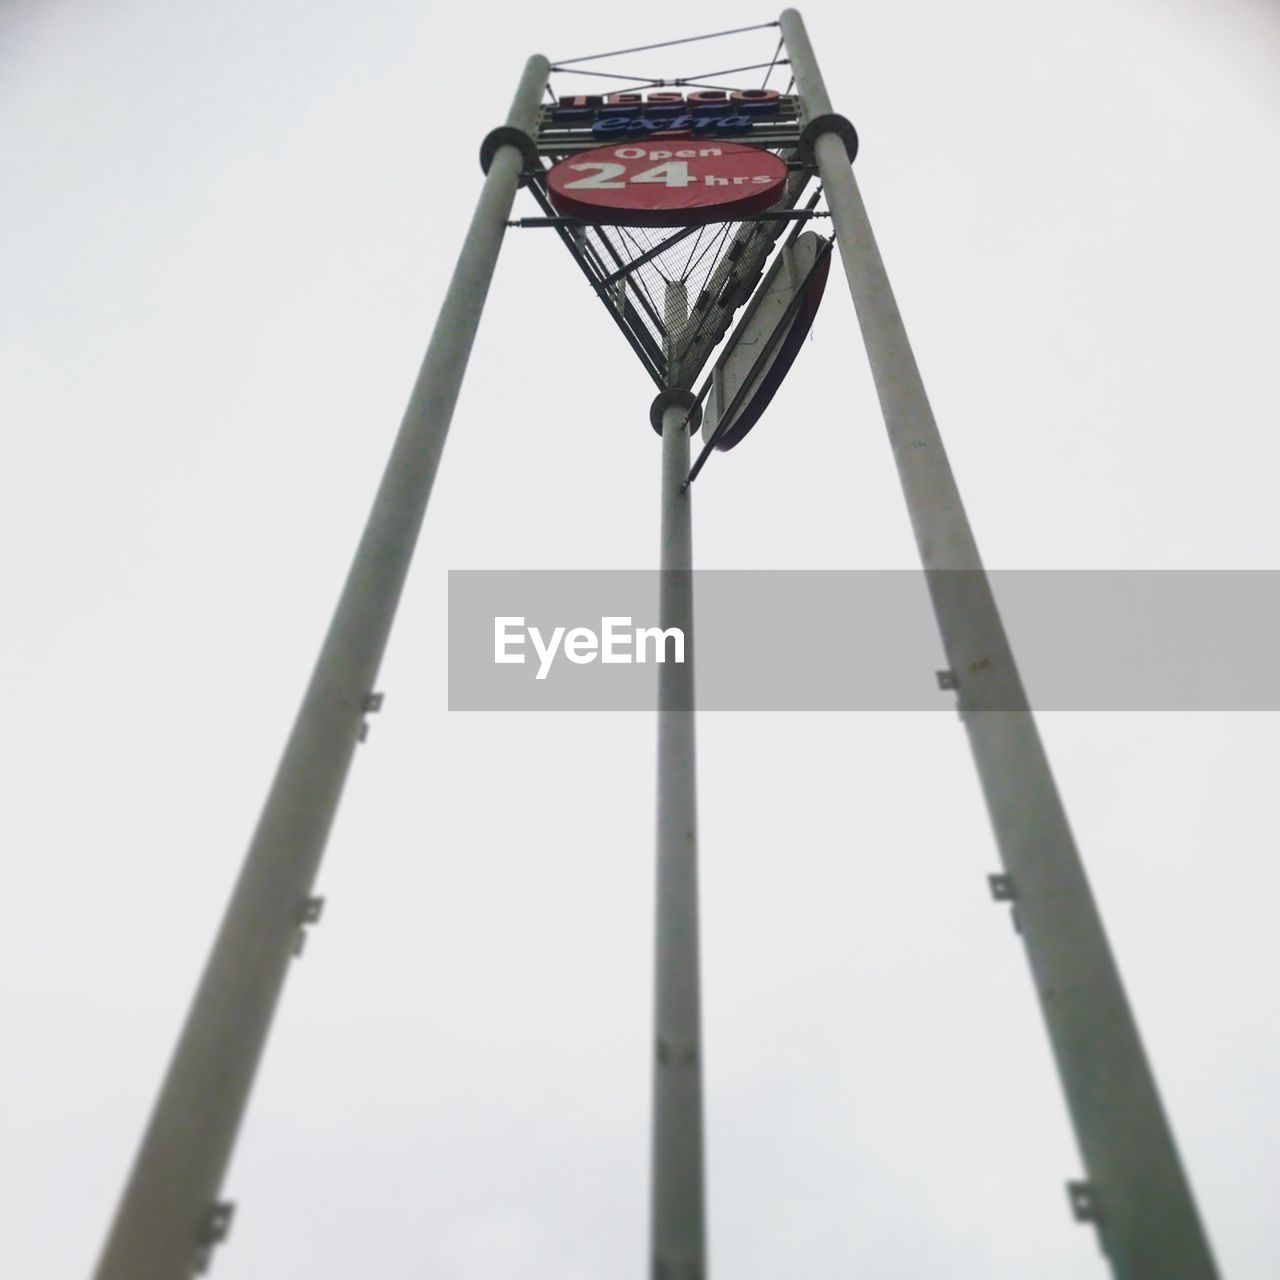 sky, low angle view, no people, nature, metal, day, basketball hoop, basketball - sport, clear sky, sport, outdoors, tall - high, pole, net - sports equipment, amusement park ride, copy space, focus on foreground, street, street light, court, steel, alloy